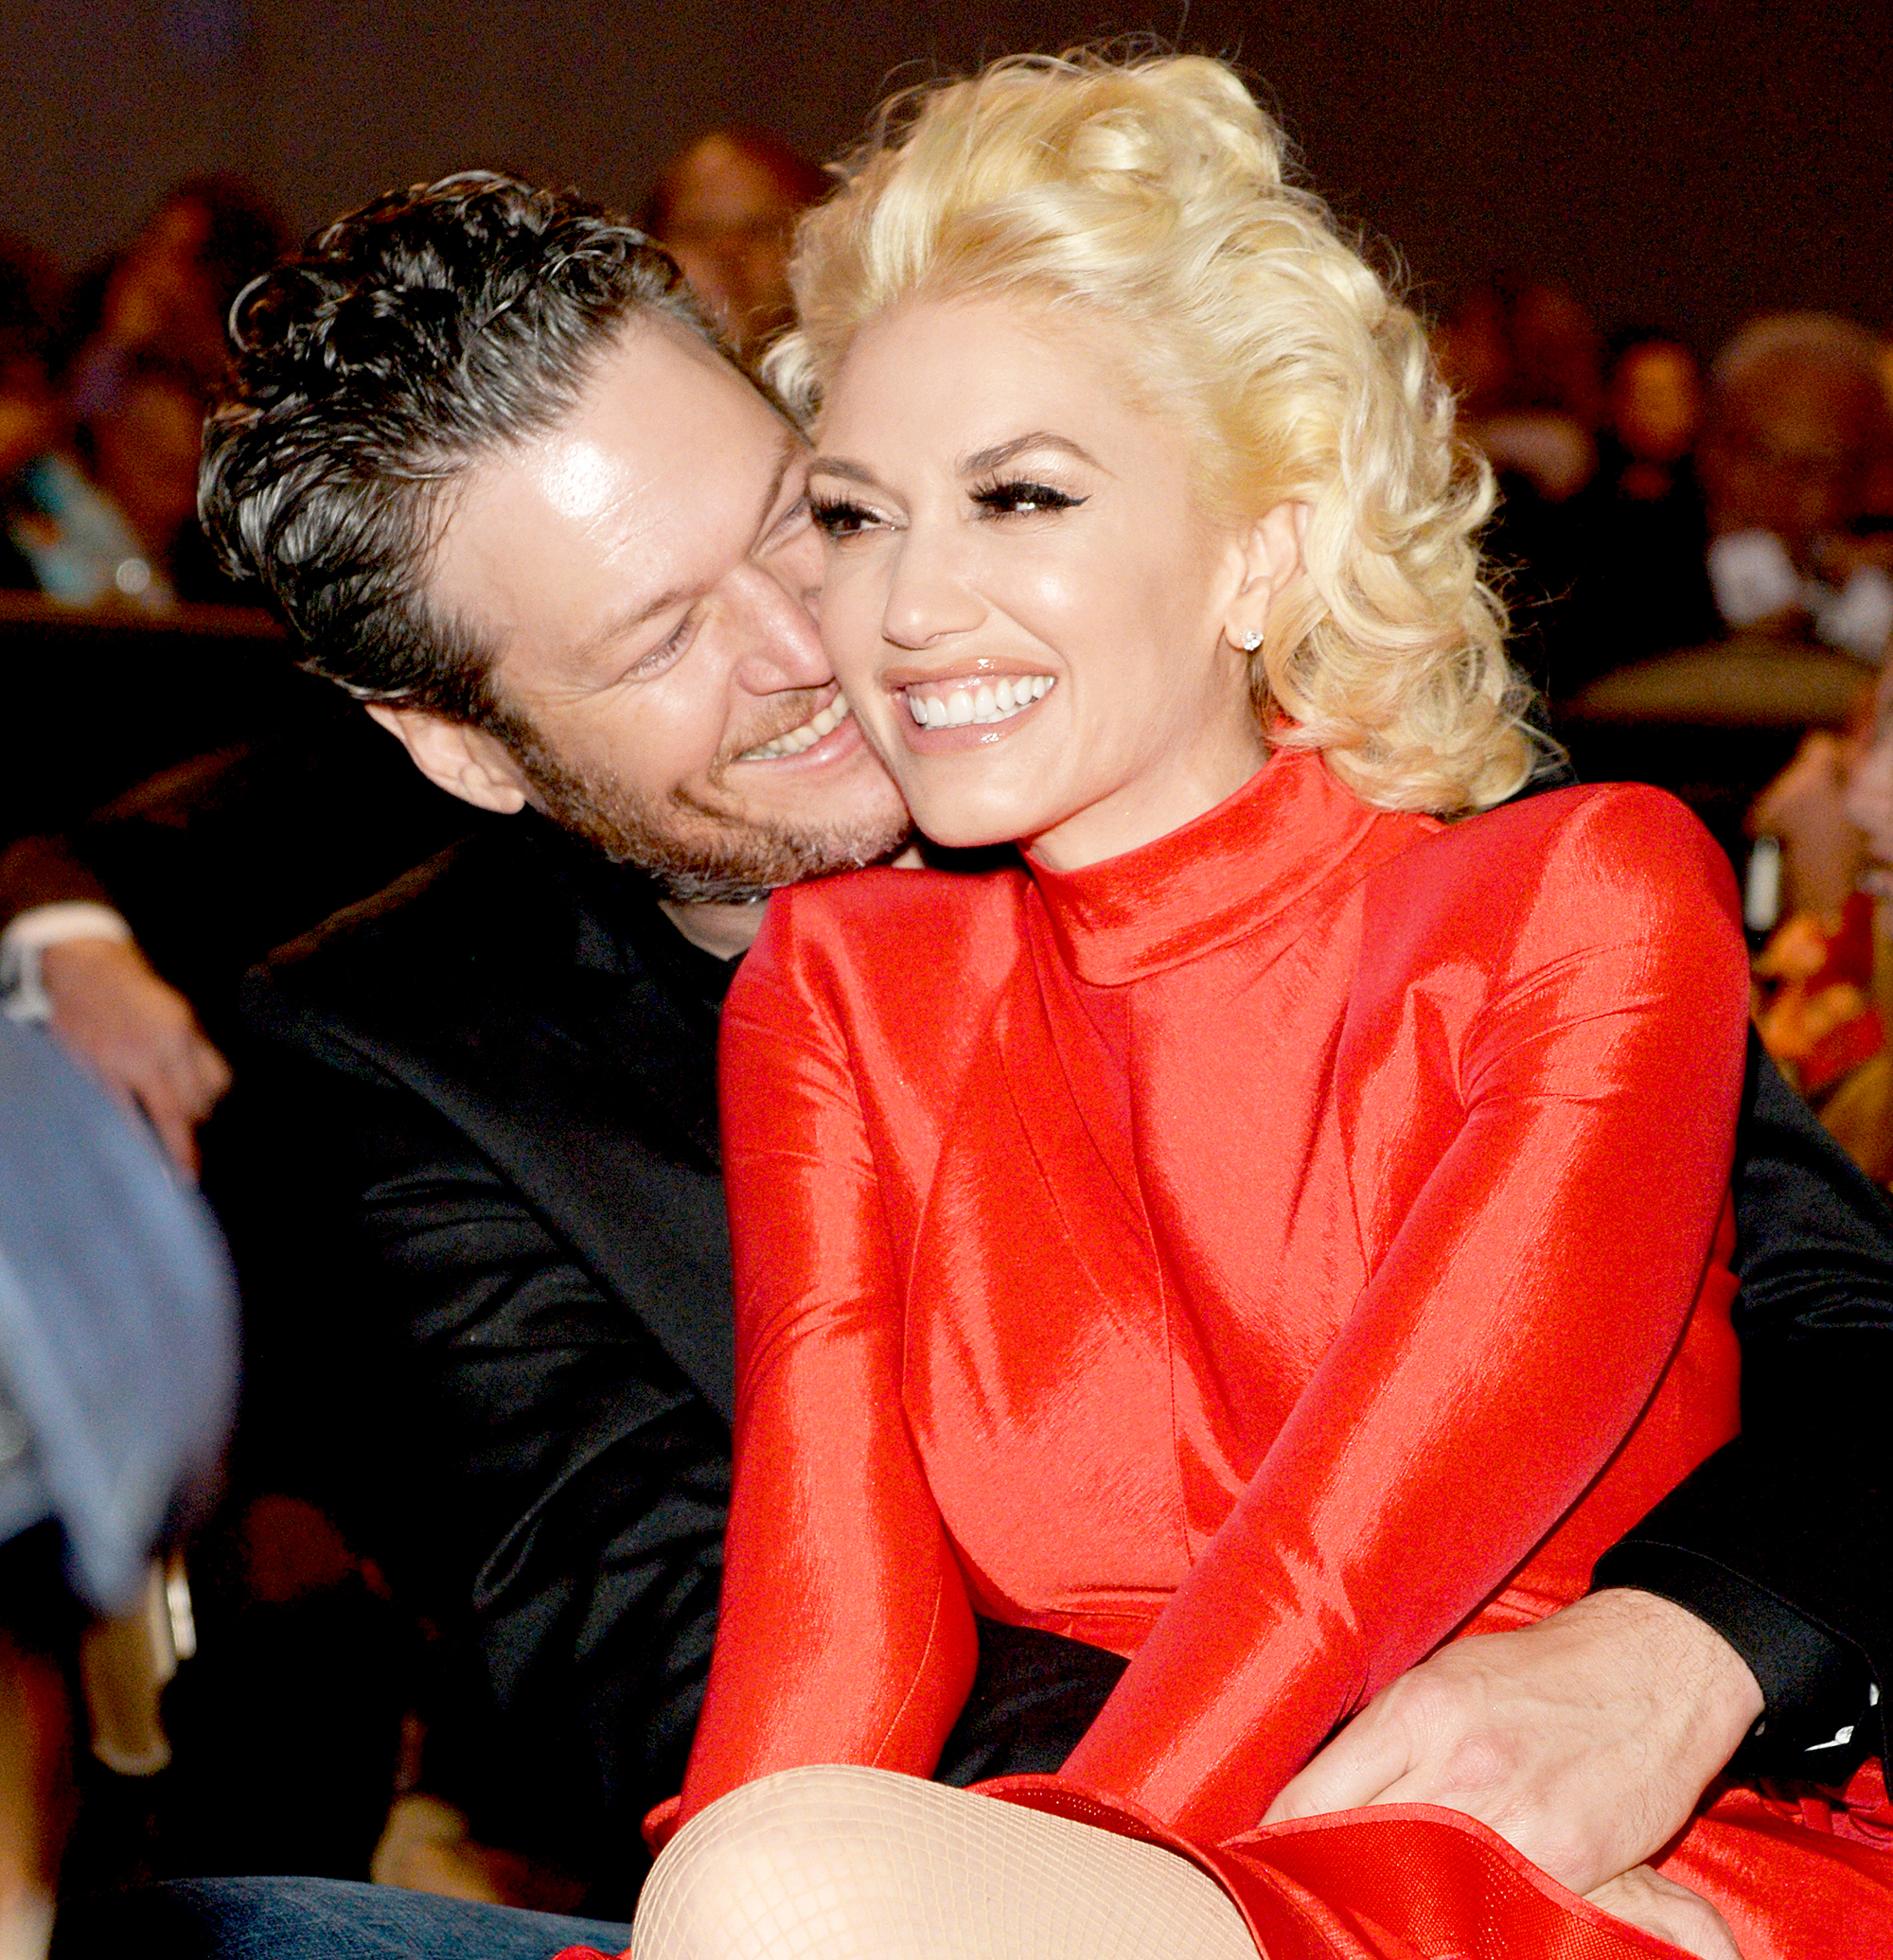 Gwen Stefani defends Blake Shelton's title as